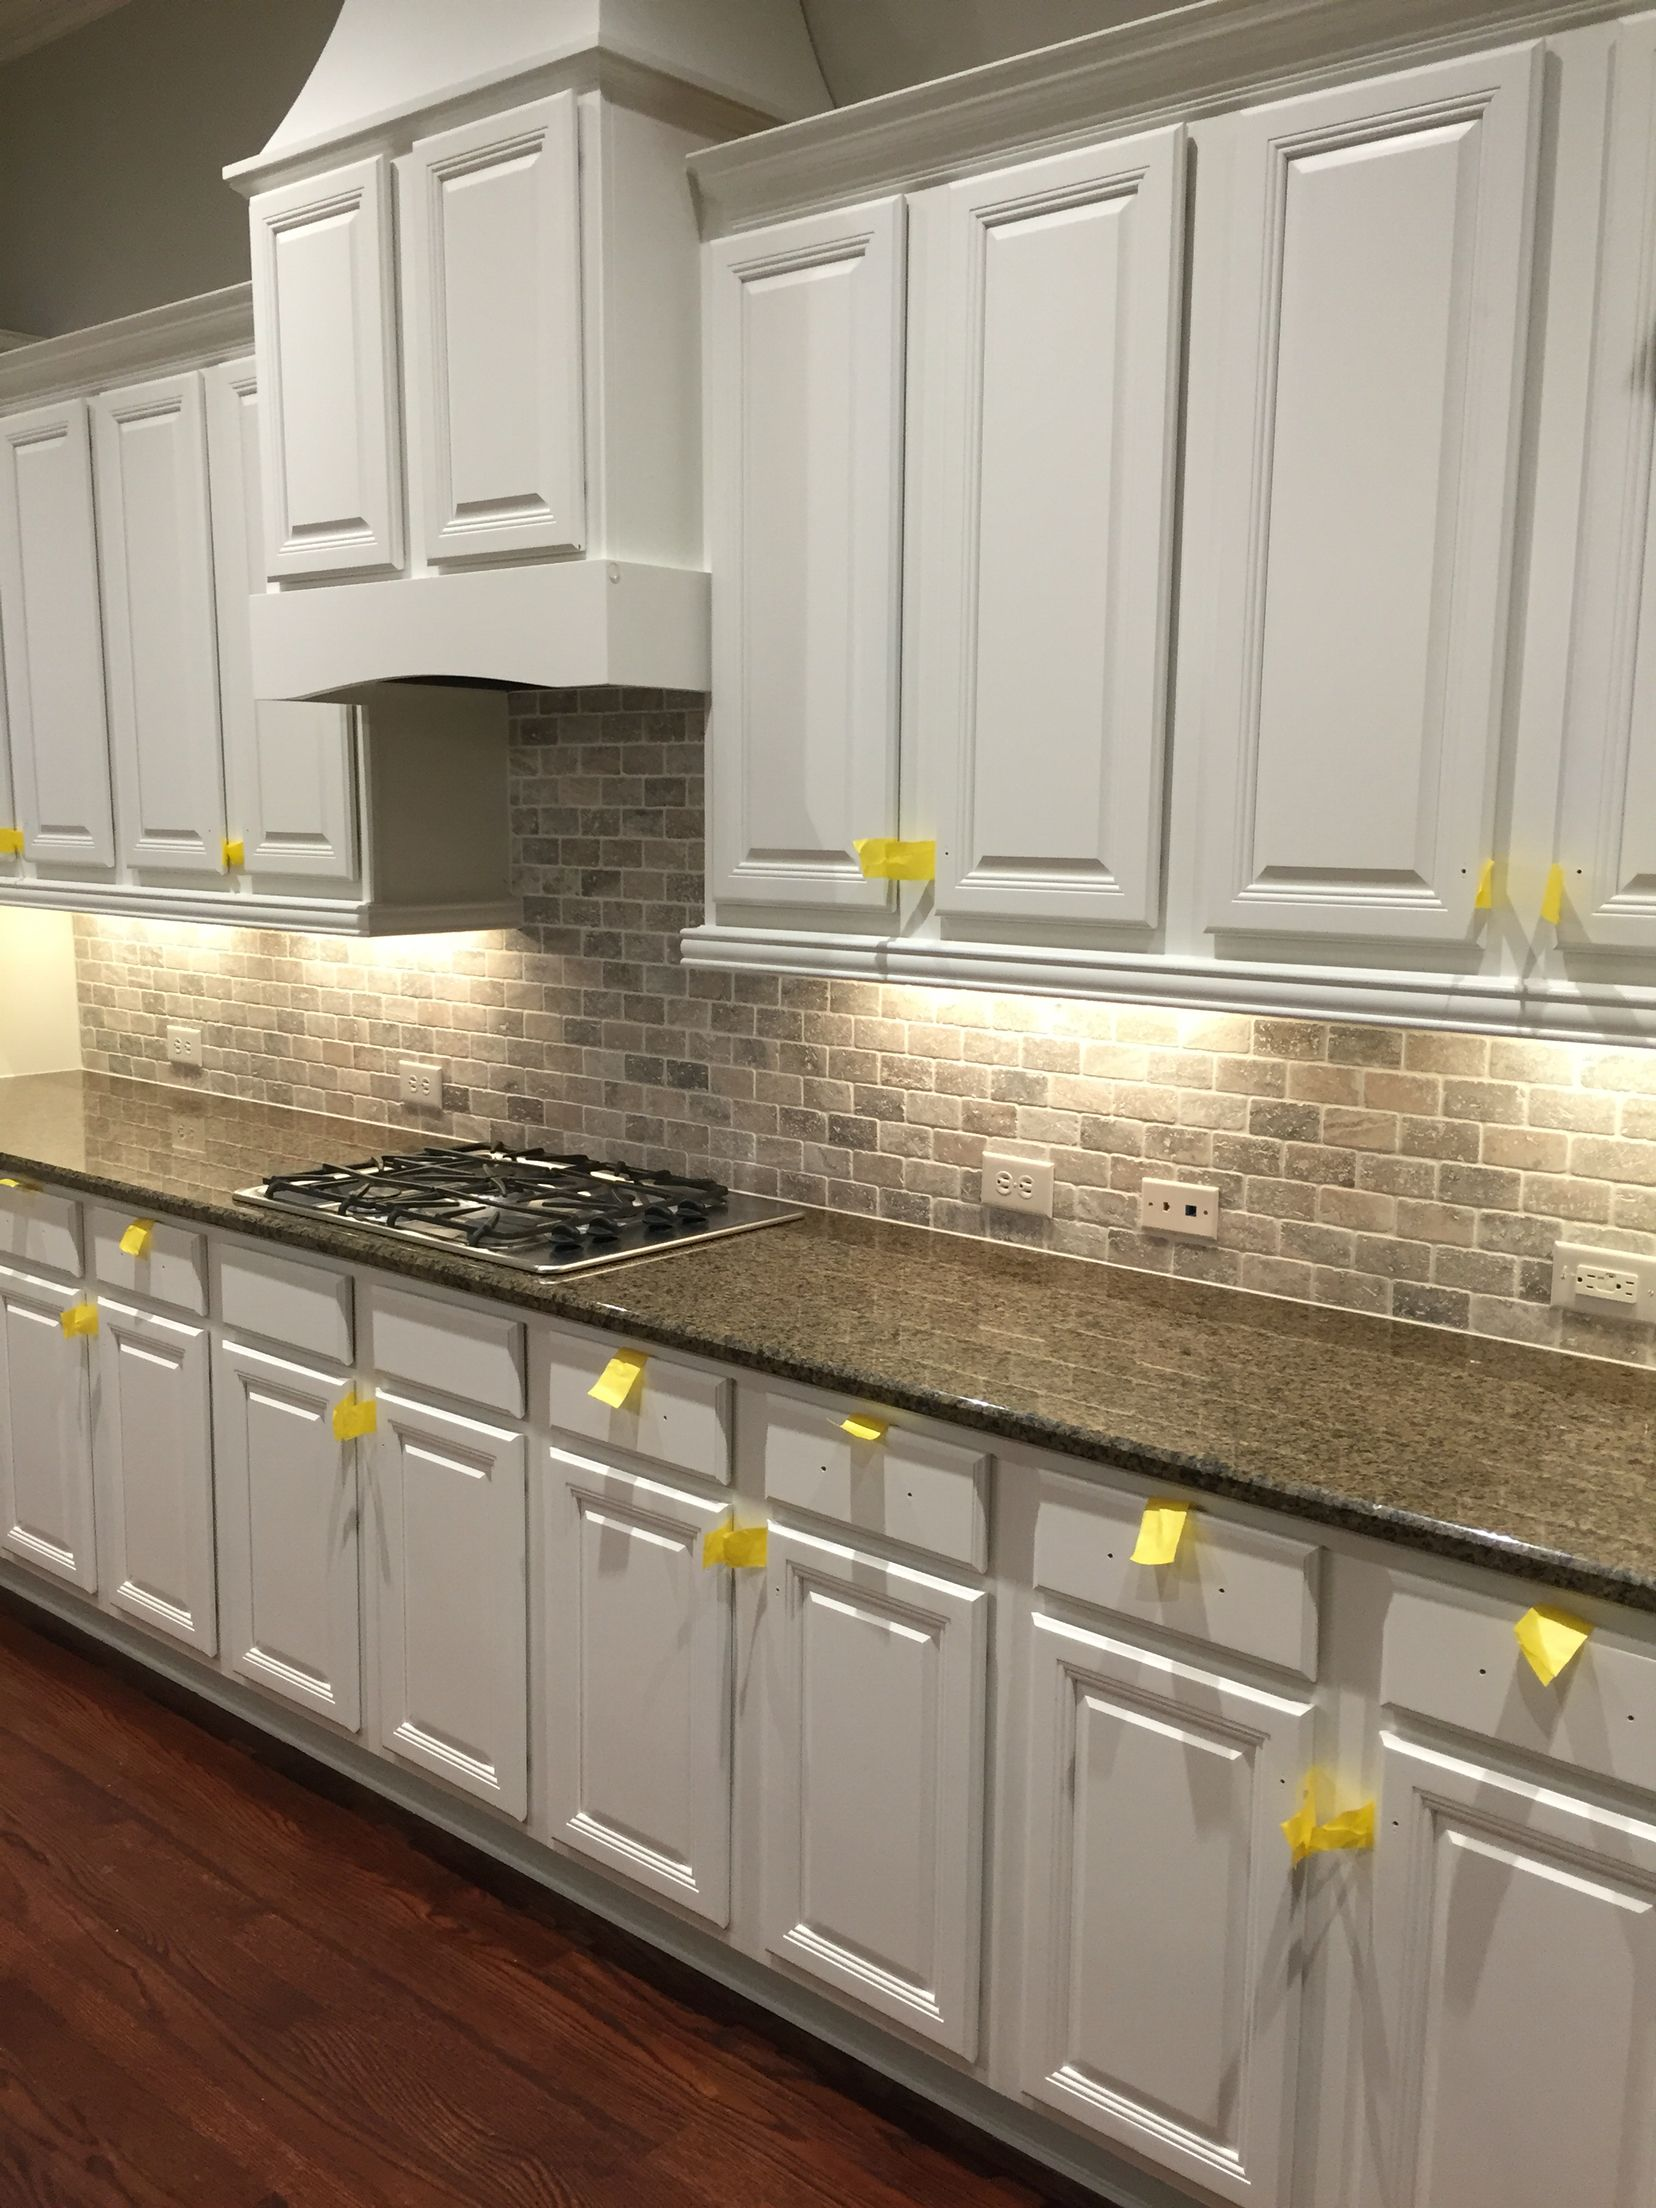 Painting Kitchen Tiles Pictures Ideas Tips From Hgtv: Painted Sherwin Williams Dover